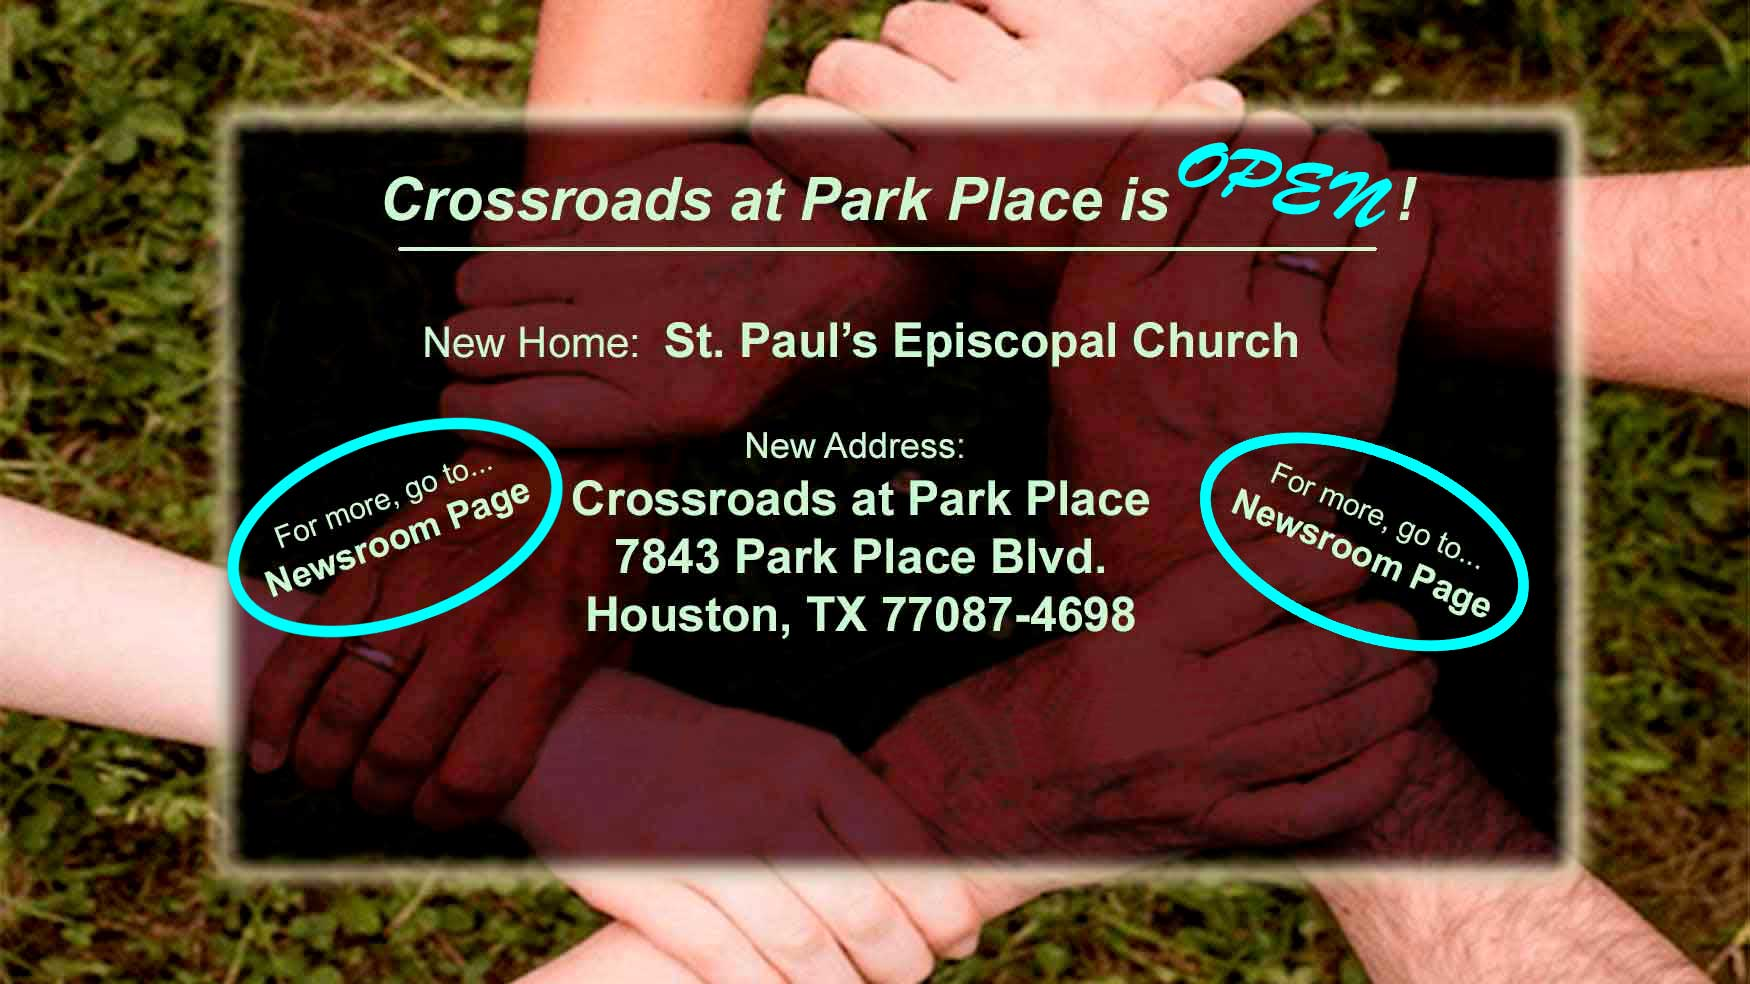 Crossroads at Park Place is Open!